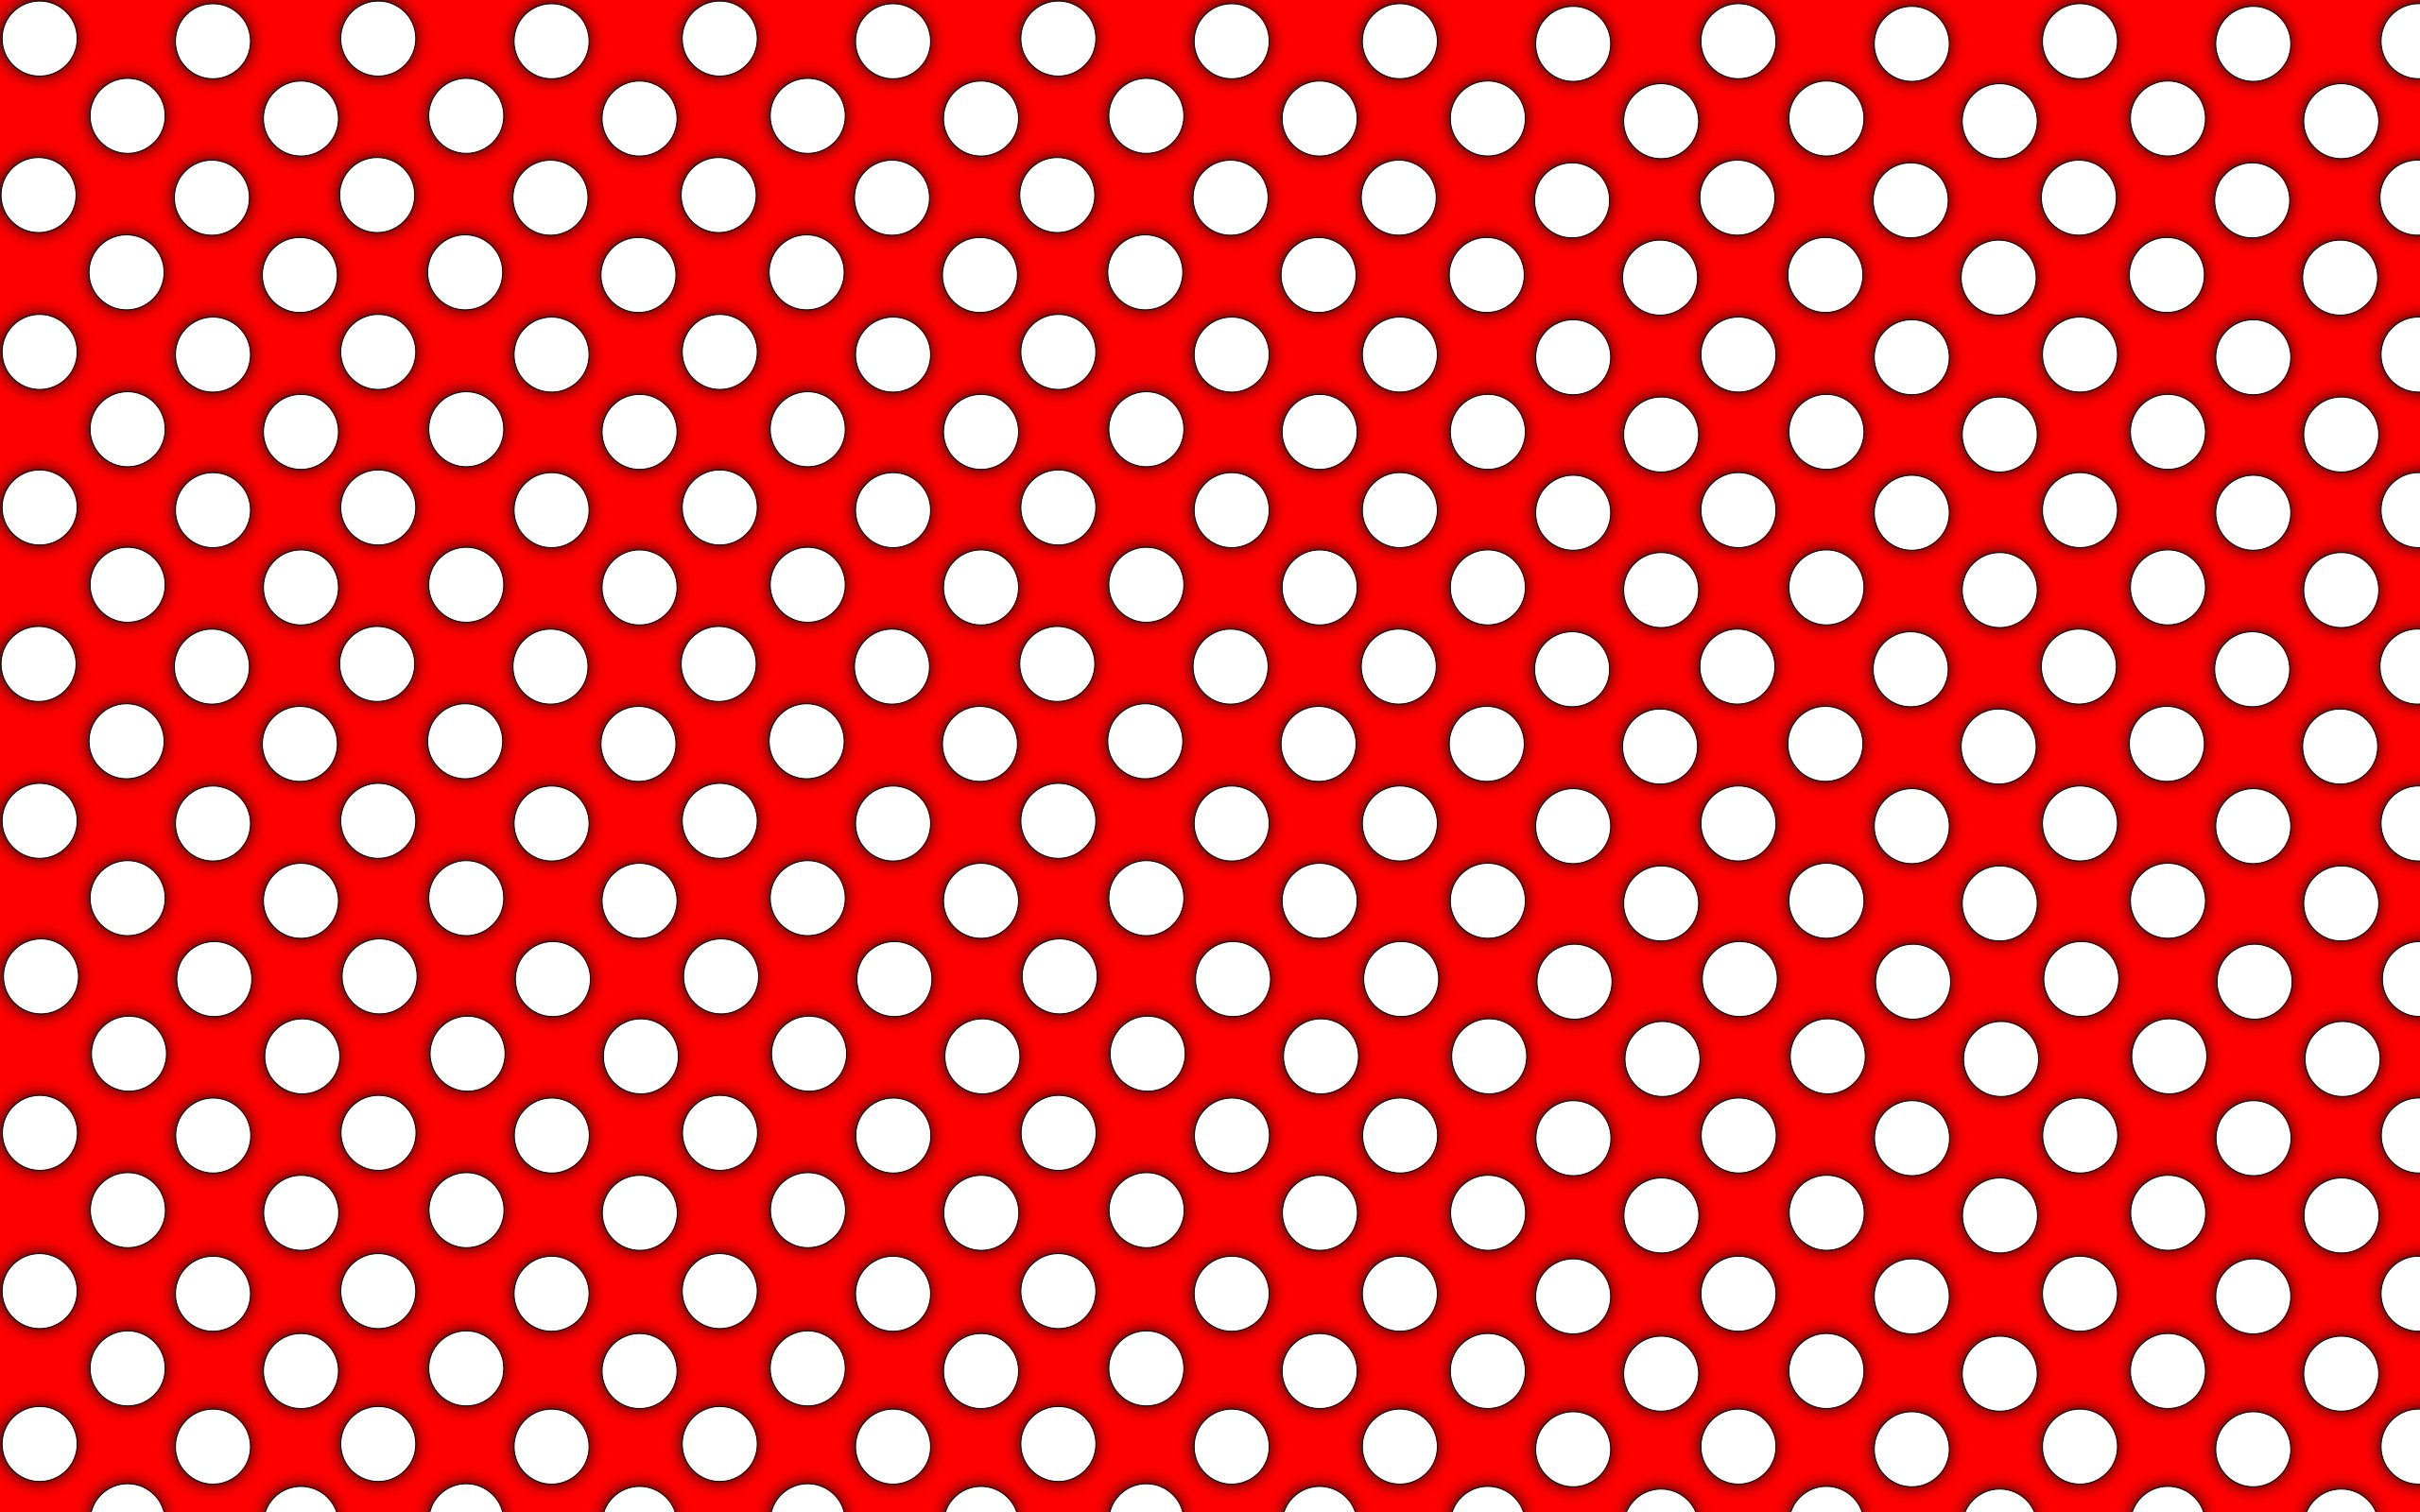 beautiful red polka dots powerpoint background #3437